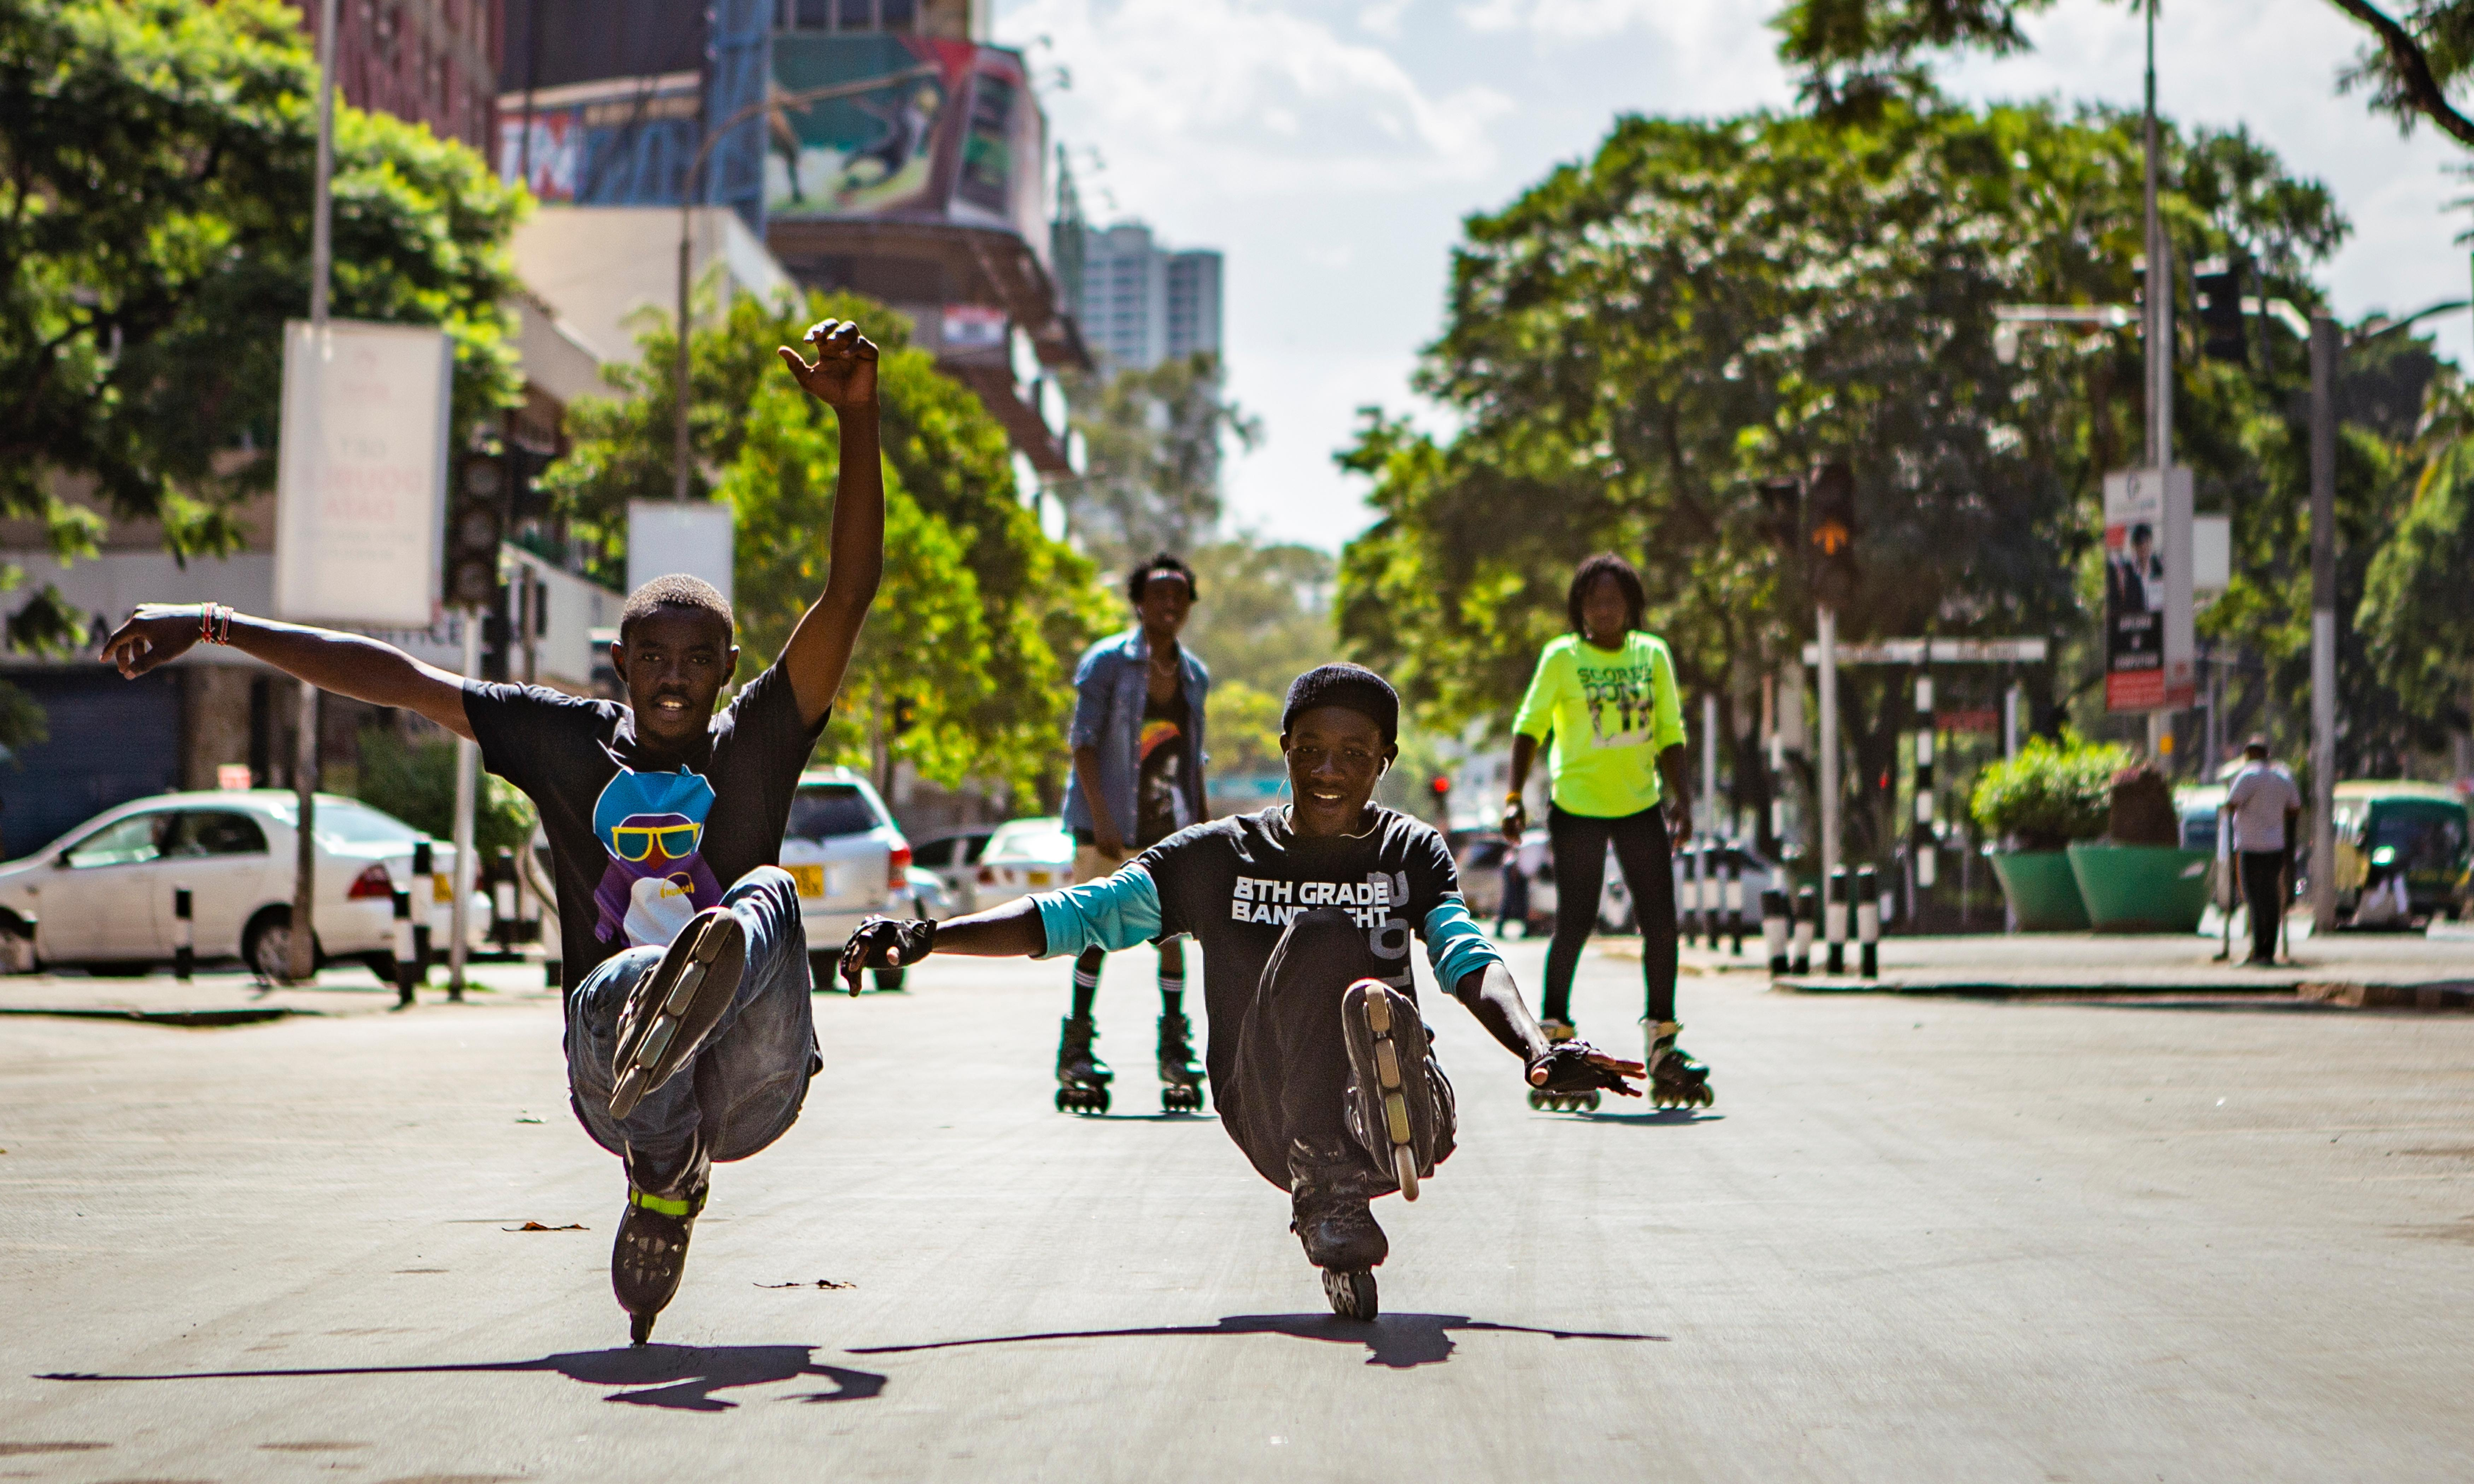 Where did all those 90s rollerblades end up? Nairobi